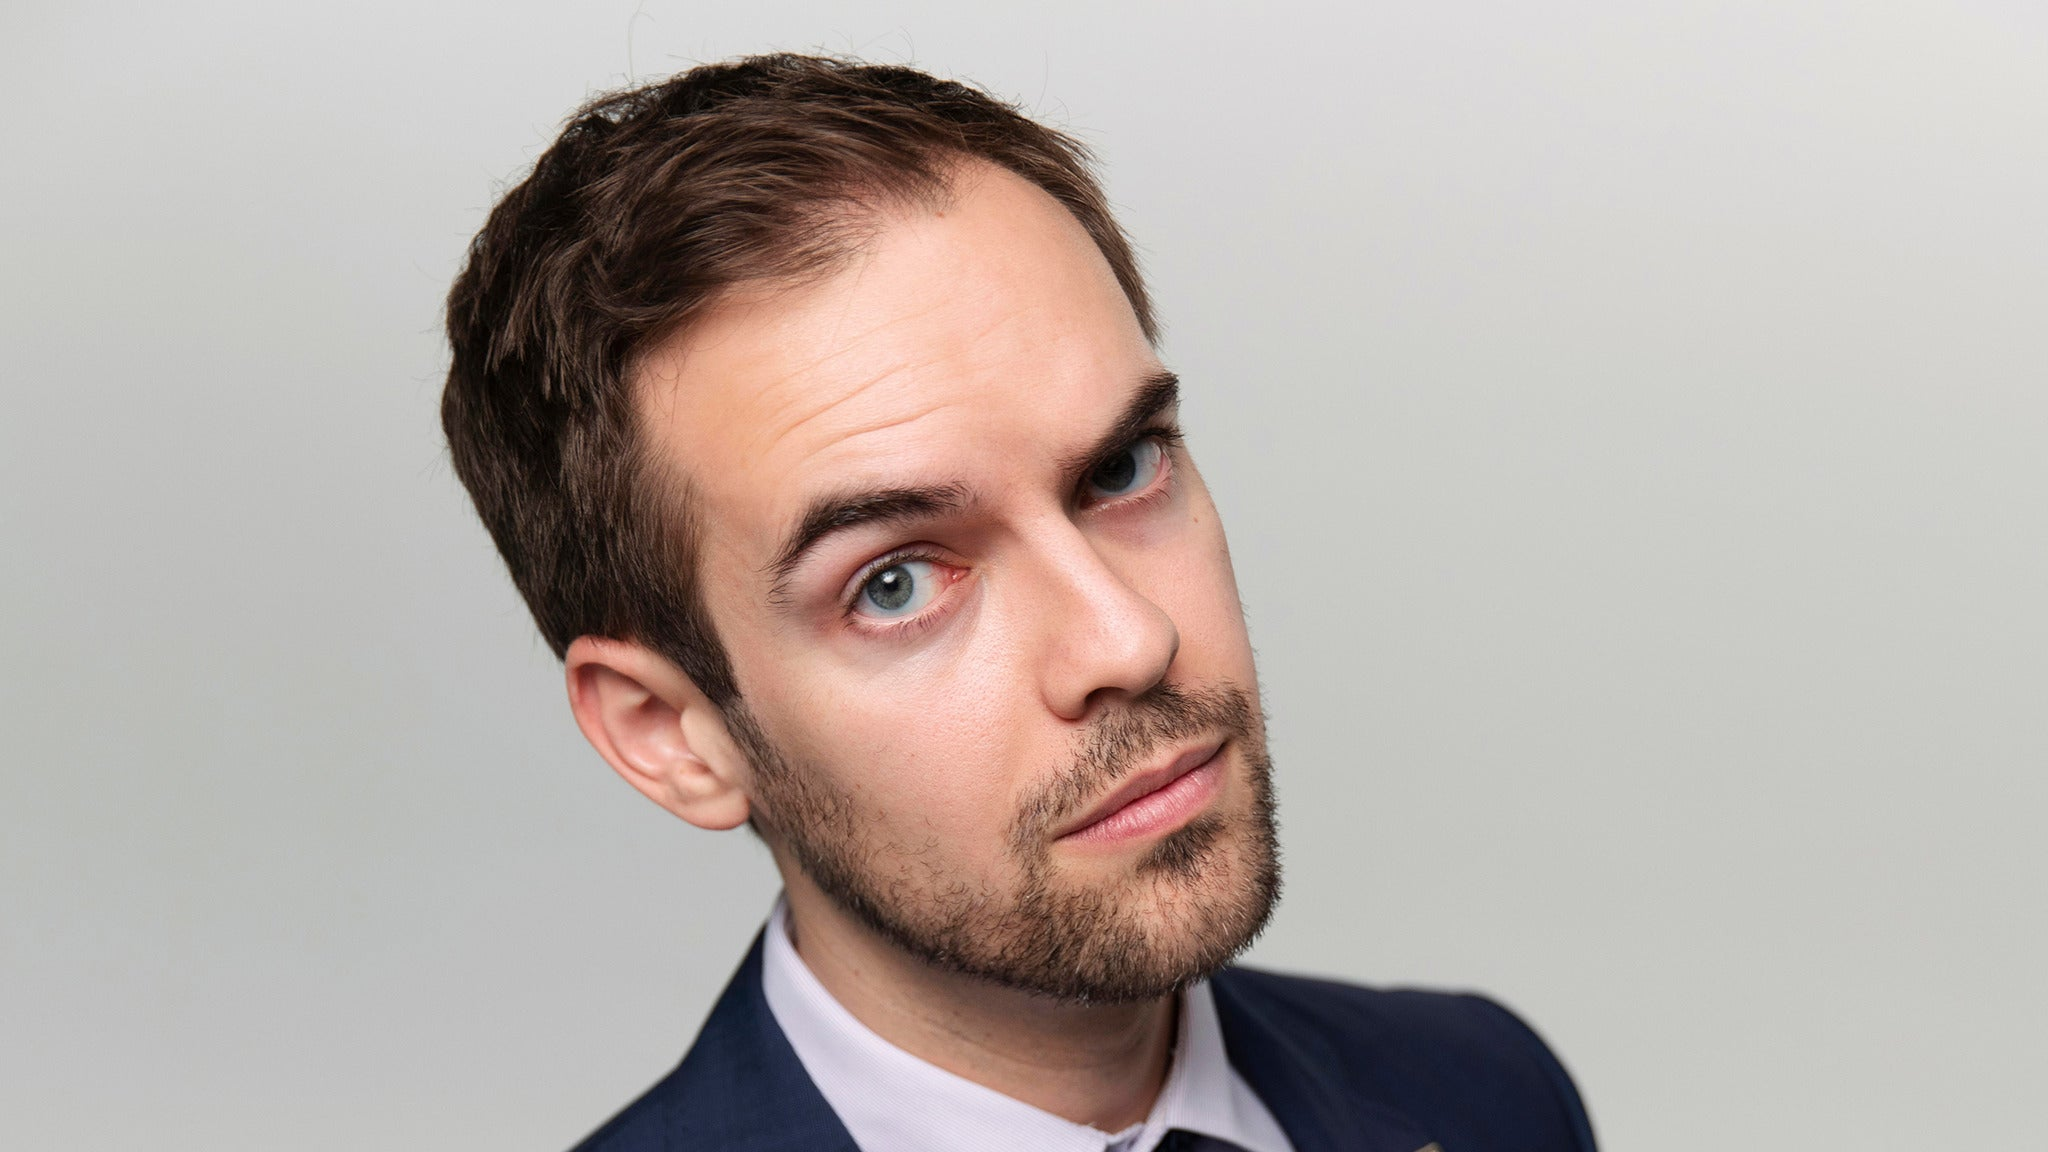 Jacksfilms Presents: YIAY LIVE! LIVE! at Varsity Theater